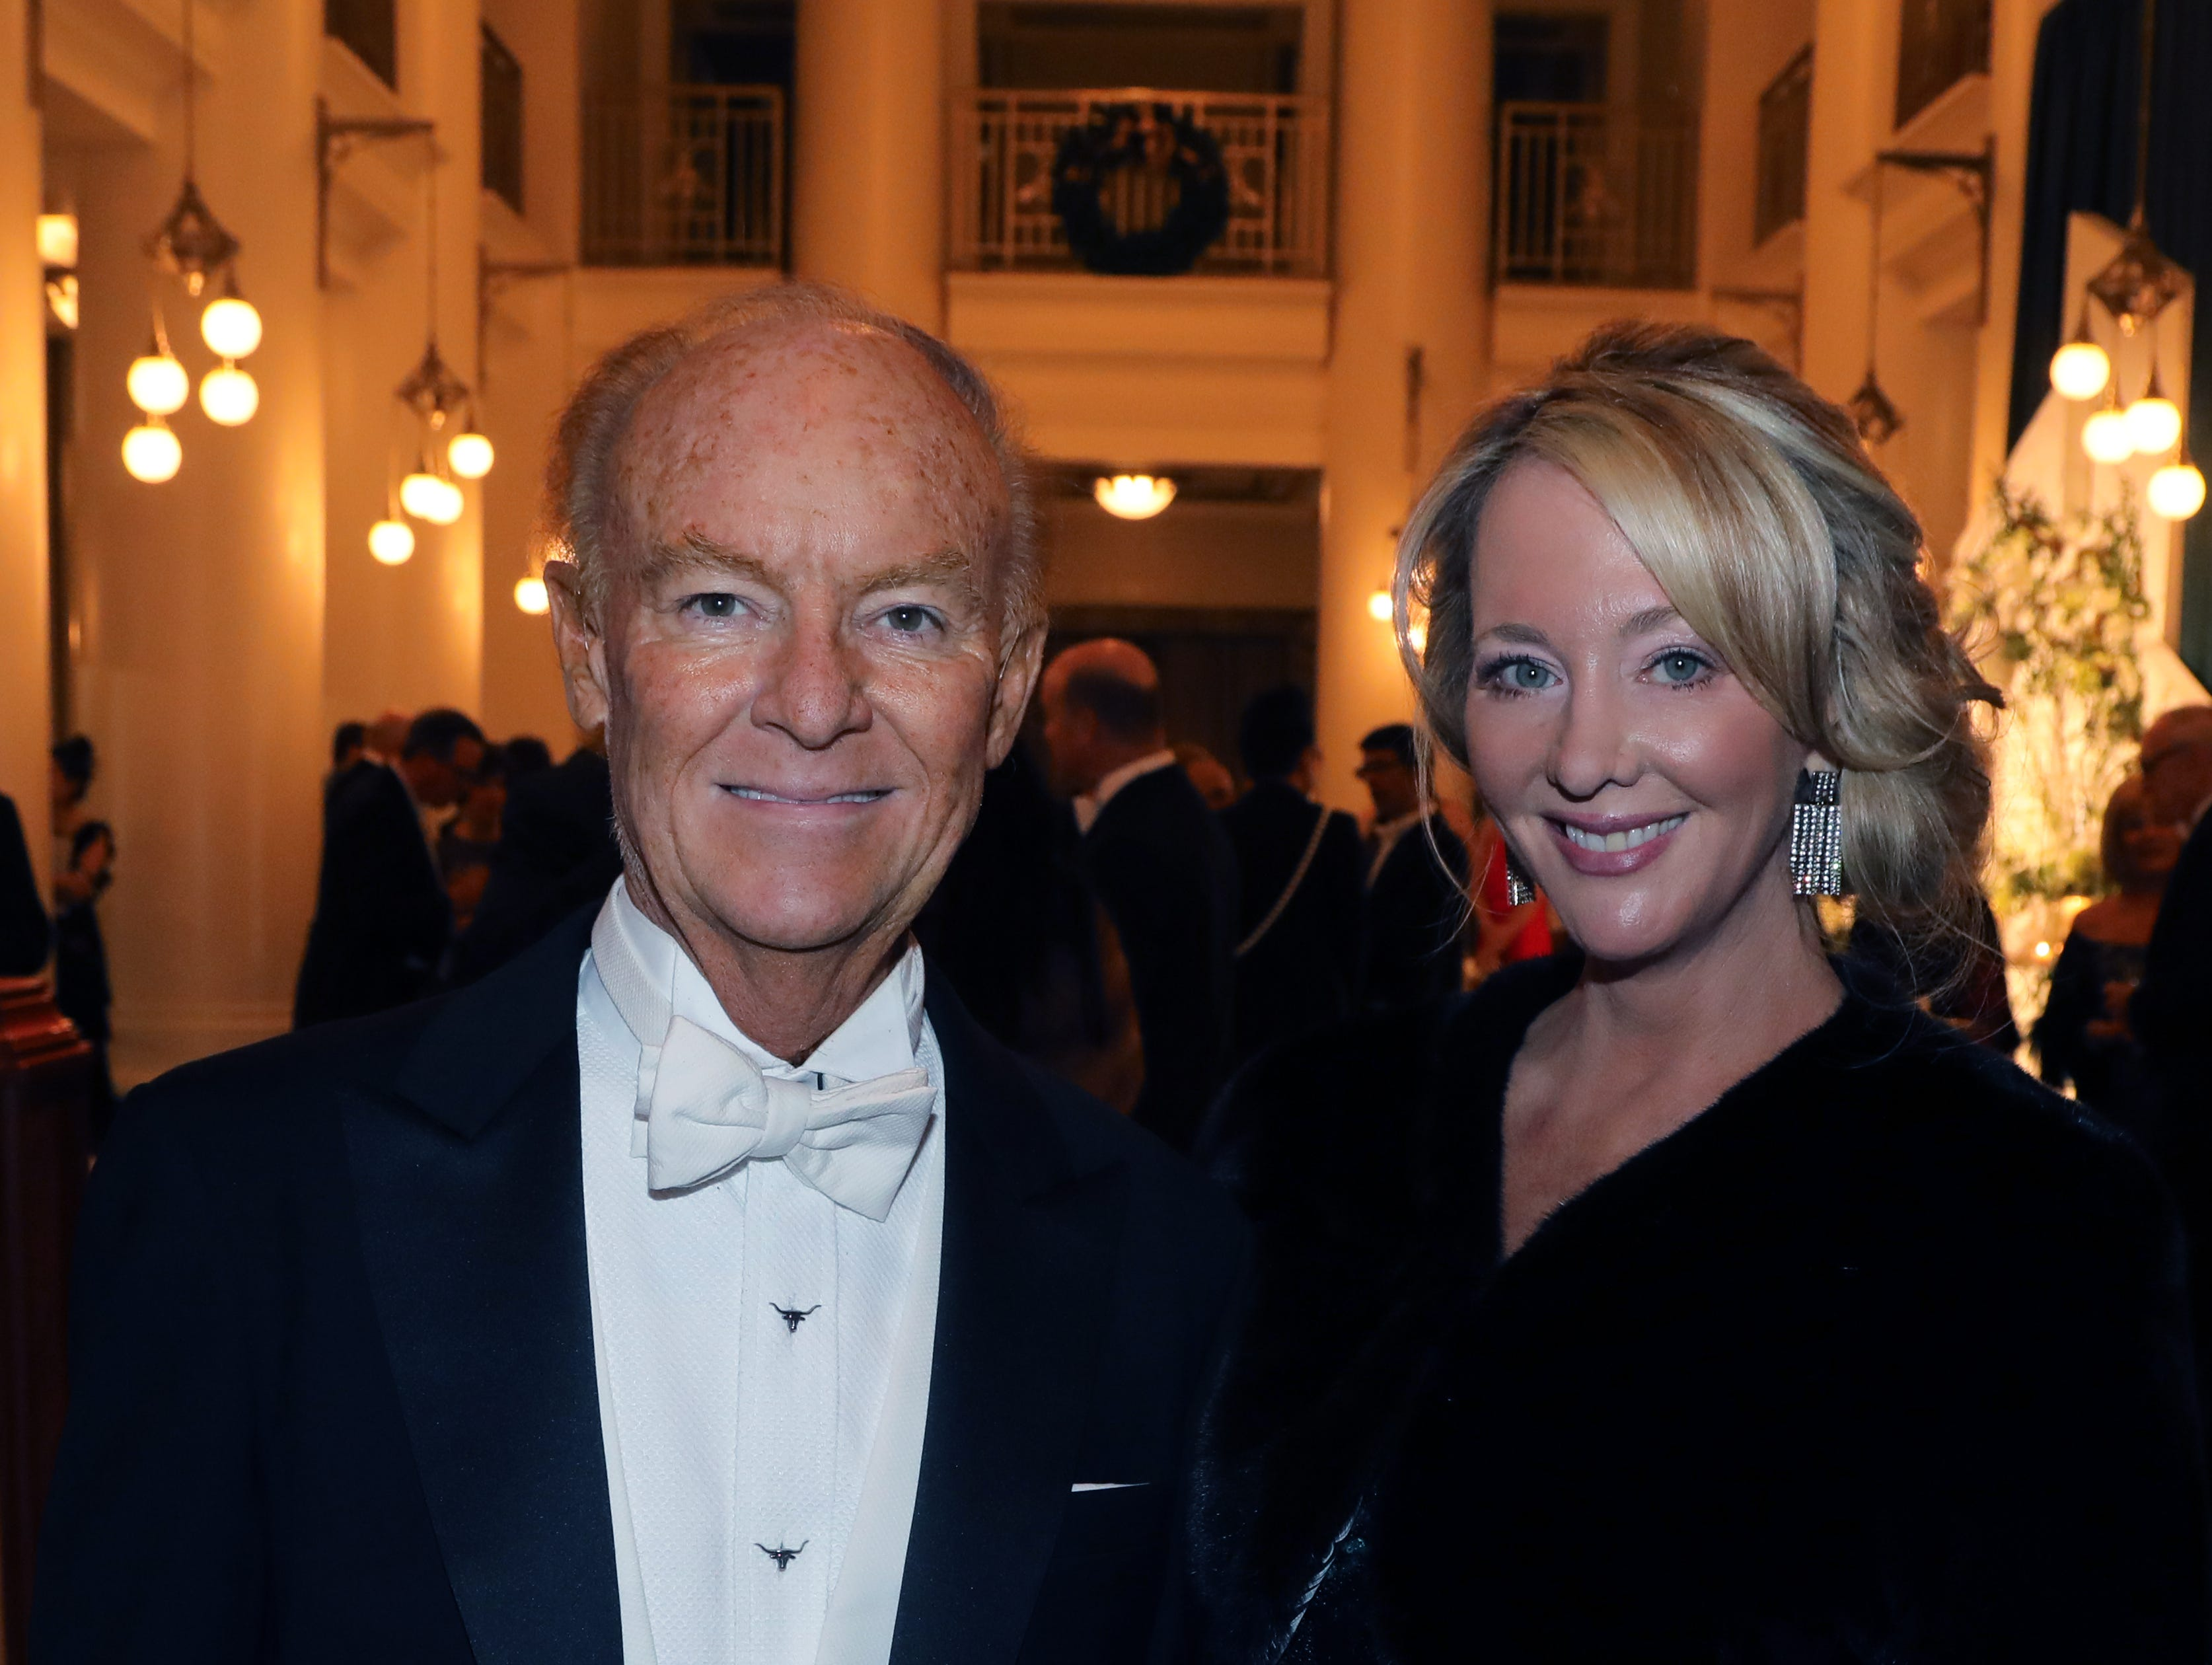 Emily and Mark Humphreys at the 34th annual Symphony Ball on Saturday, December 8, 2018, at Schermerhorn Symphony Center.